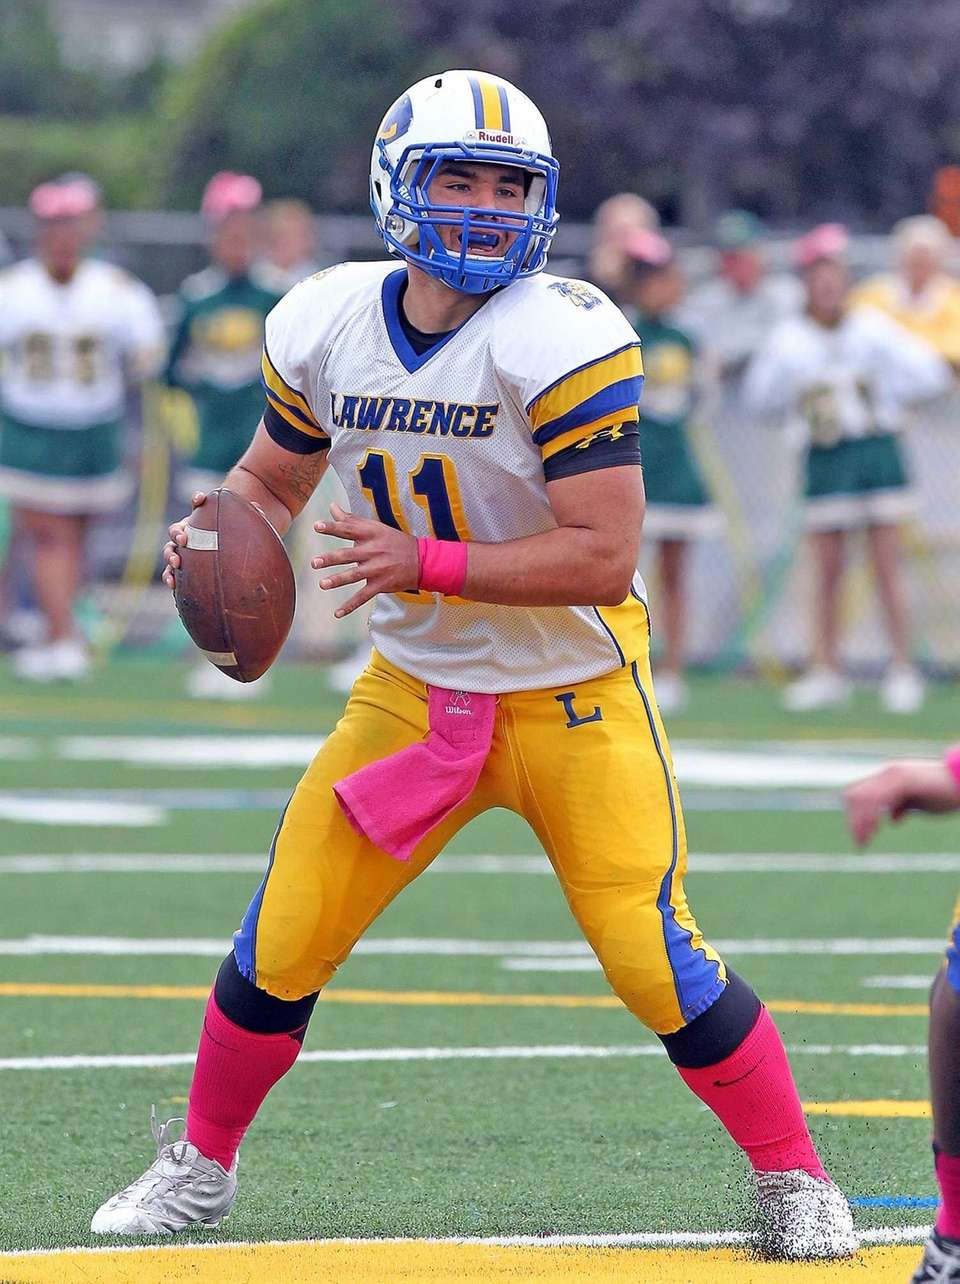 Lawrence's QB Joe Capobianco looks over the middle